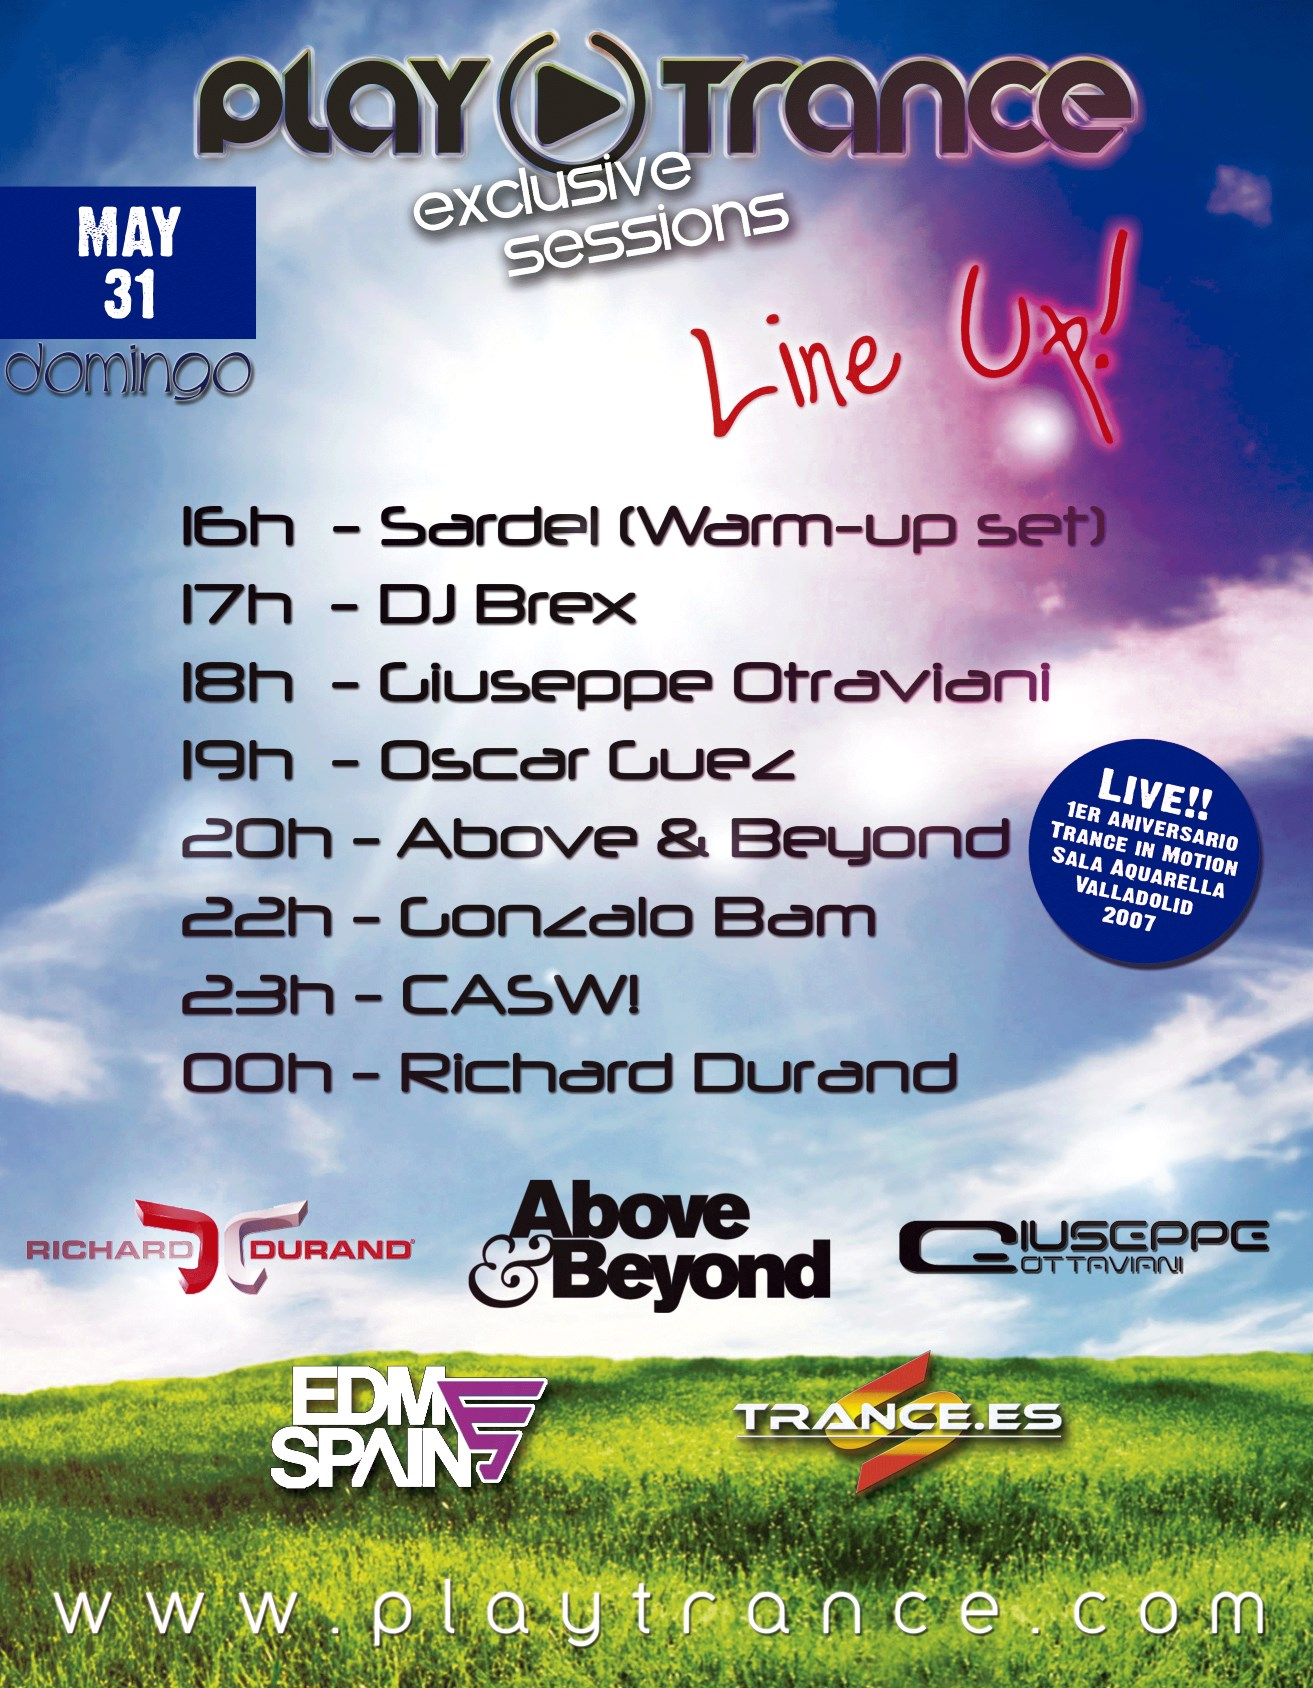 30 may: PlayTrance Exclusive Sessions 2015 junto con Trance.es y EDM Spain Trance